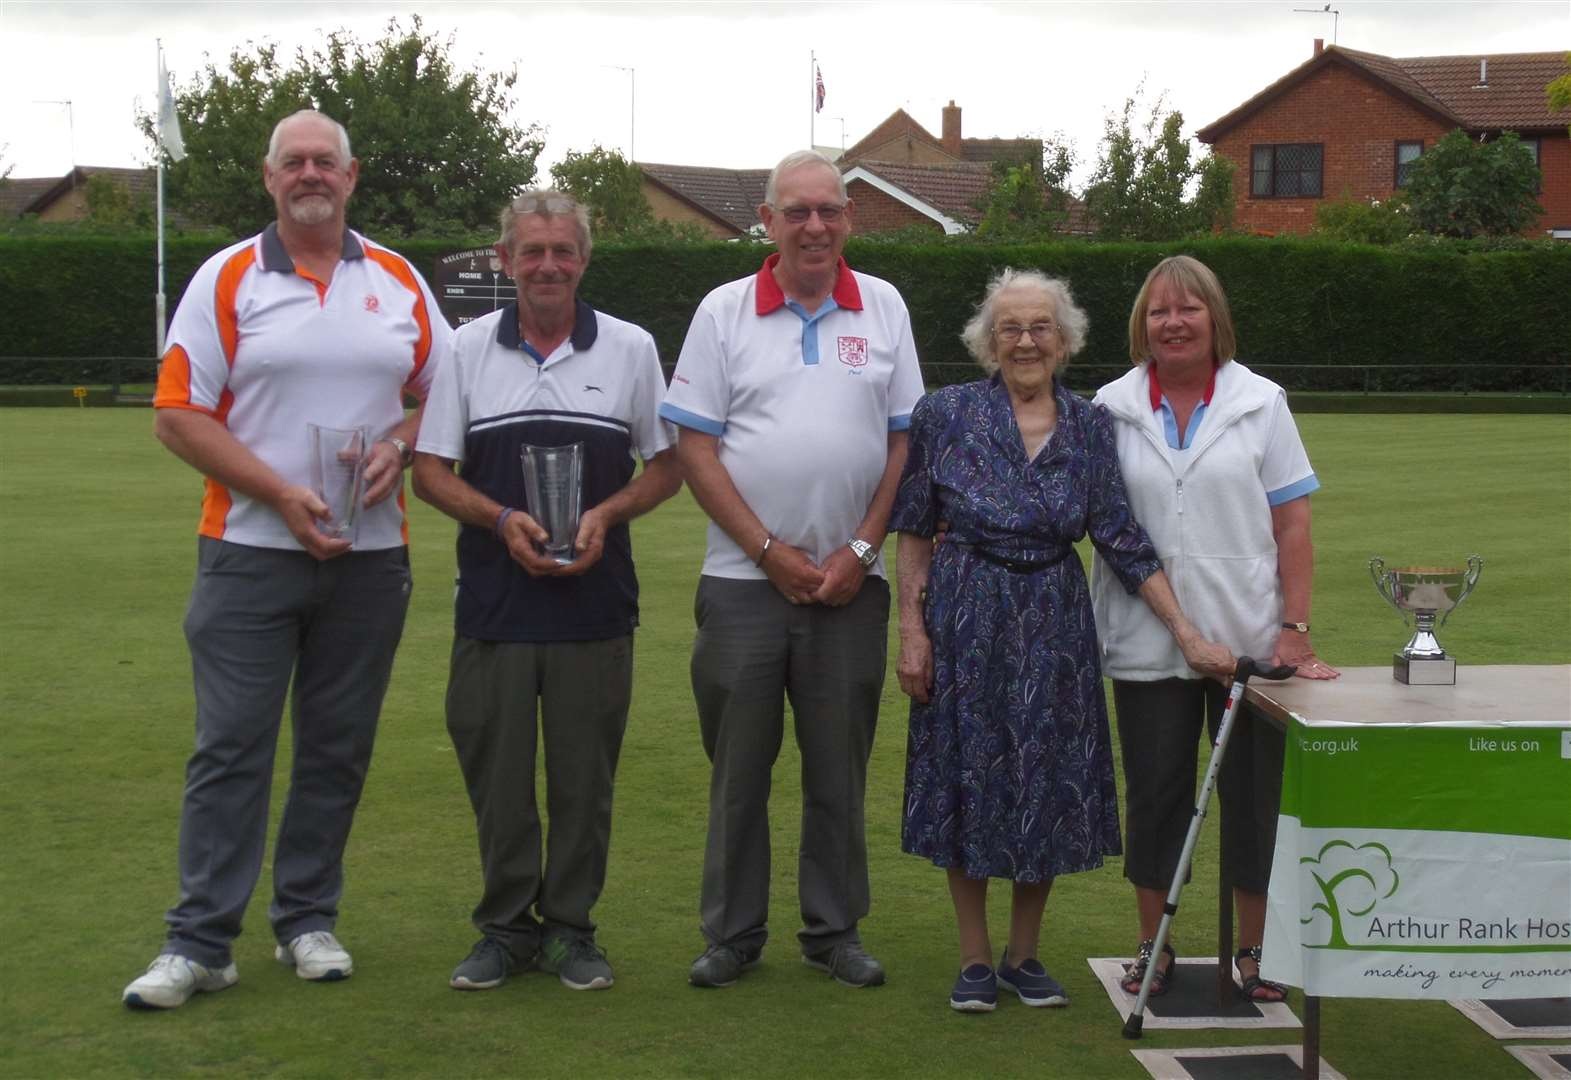 CMB bowls Les Howard Memorial Trophy raises funds for Alan Hudson Day Treatment Centre in Wisbech